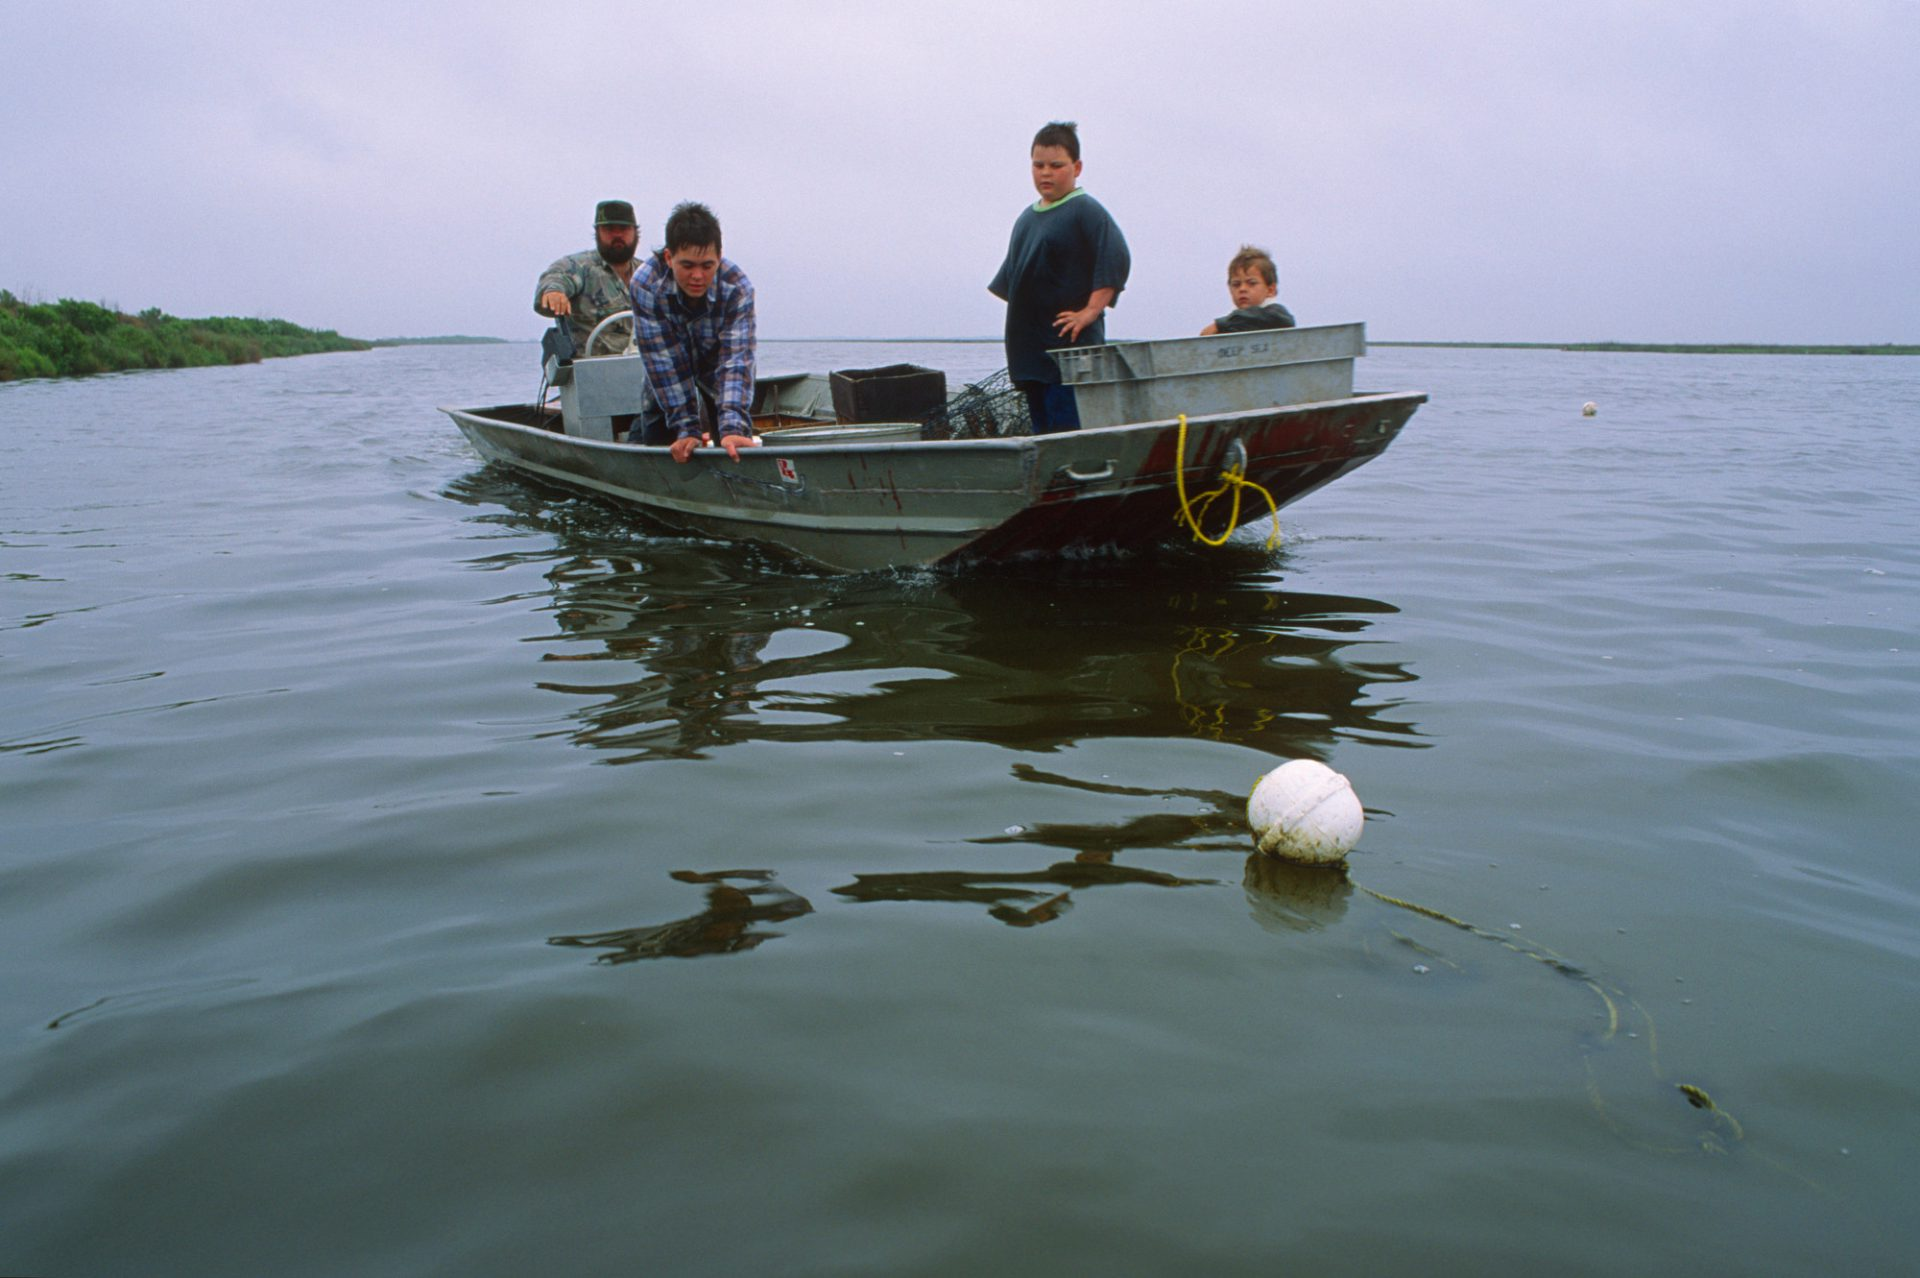 Photo: A man and his sons go fishing along the gulf coast.